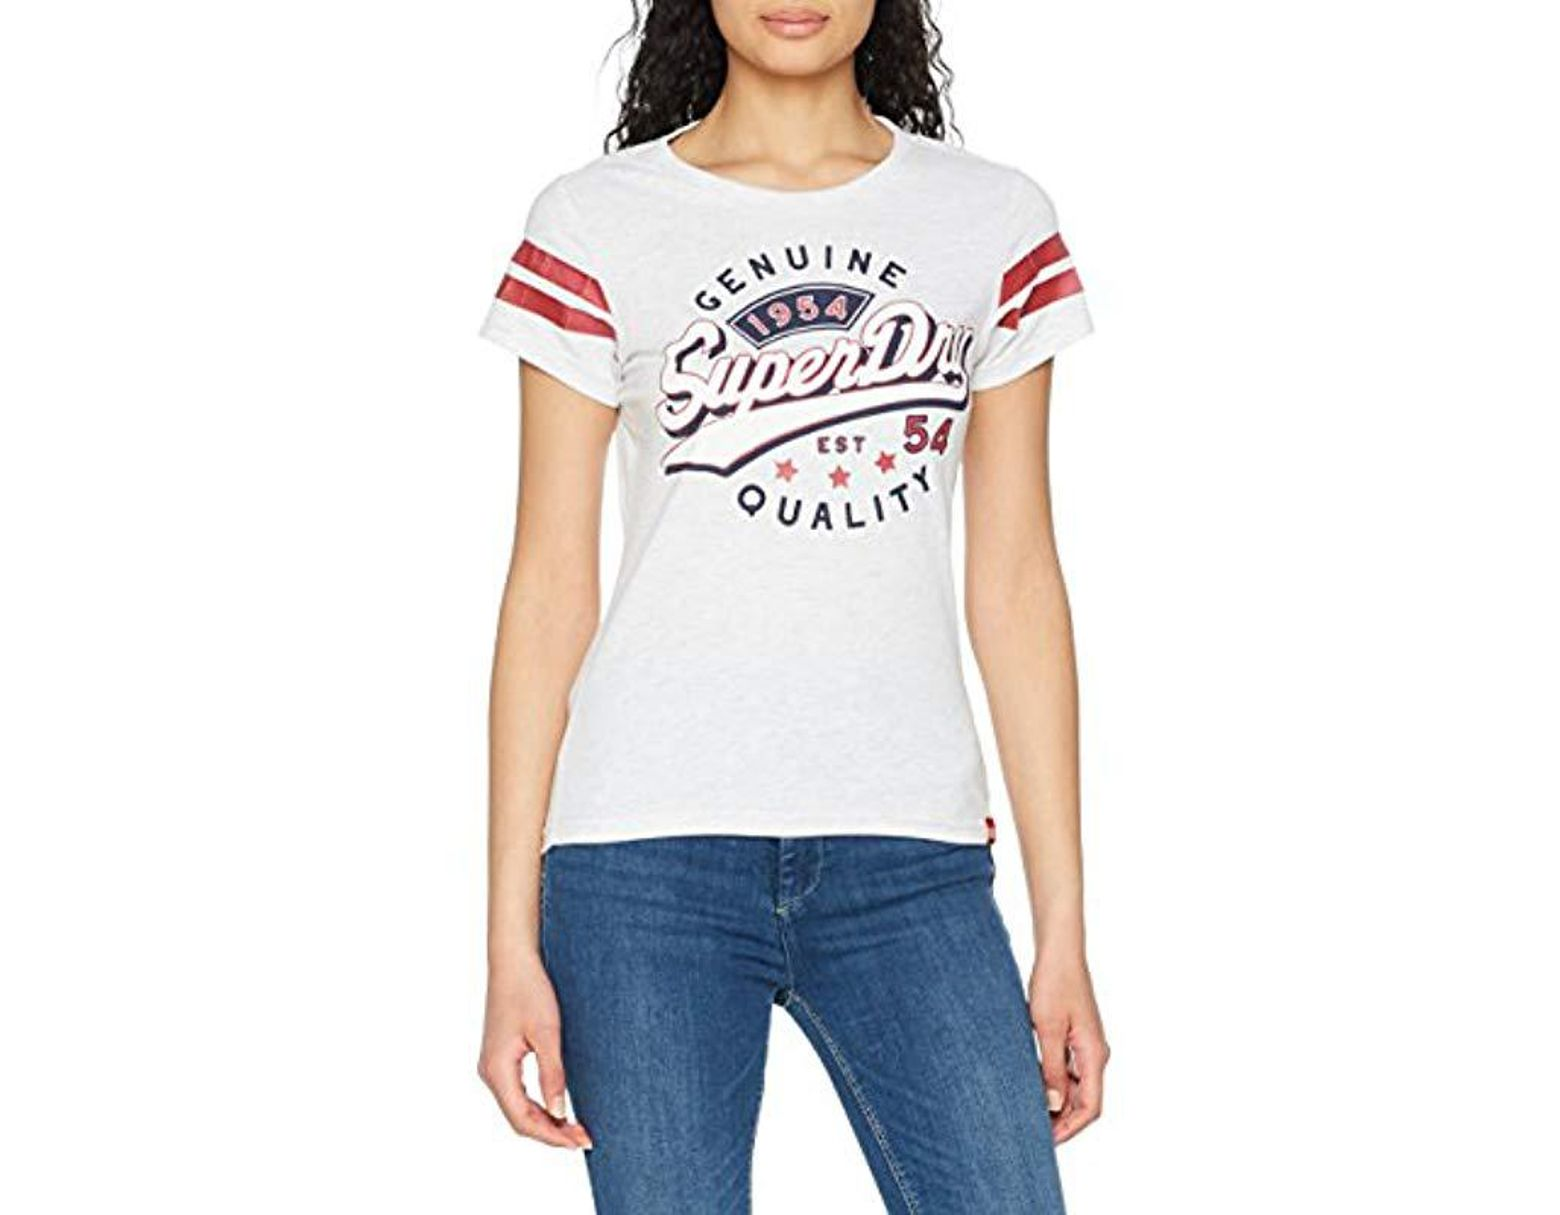 SUPERDRY VINTAGE LOGO SPARKLE ENTRY TEE Optic Snowy T-Shirt